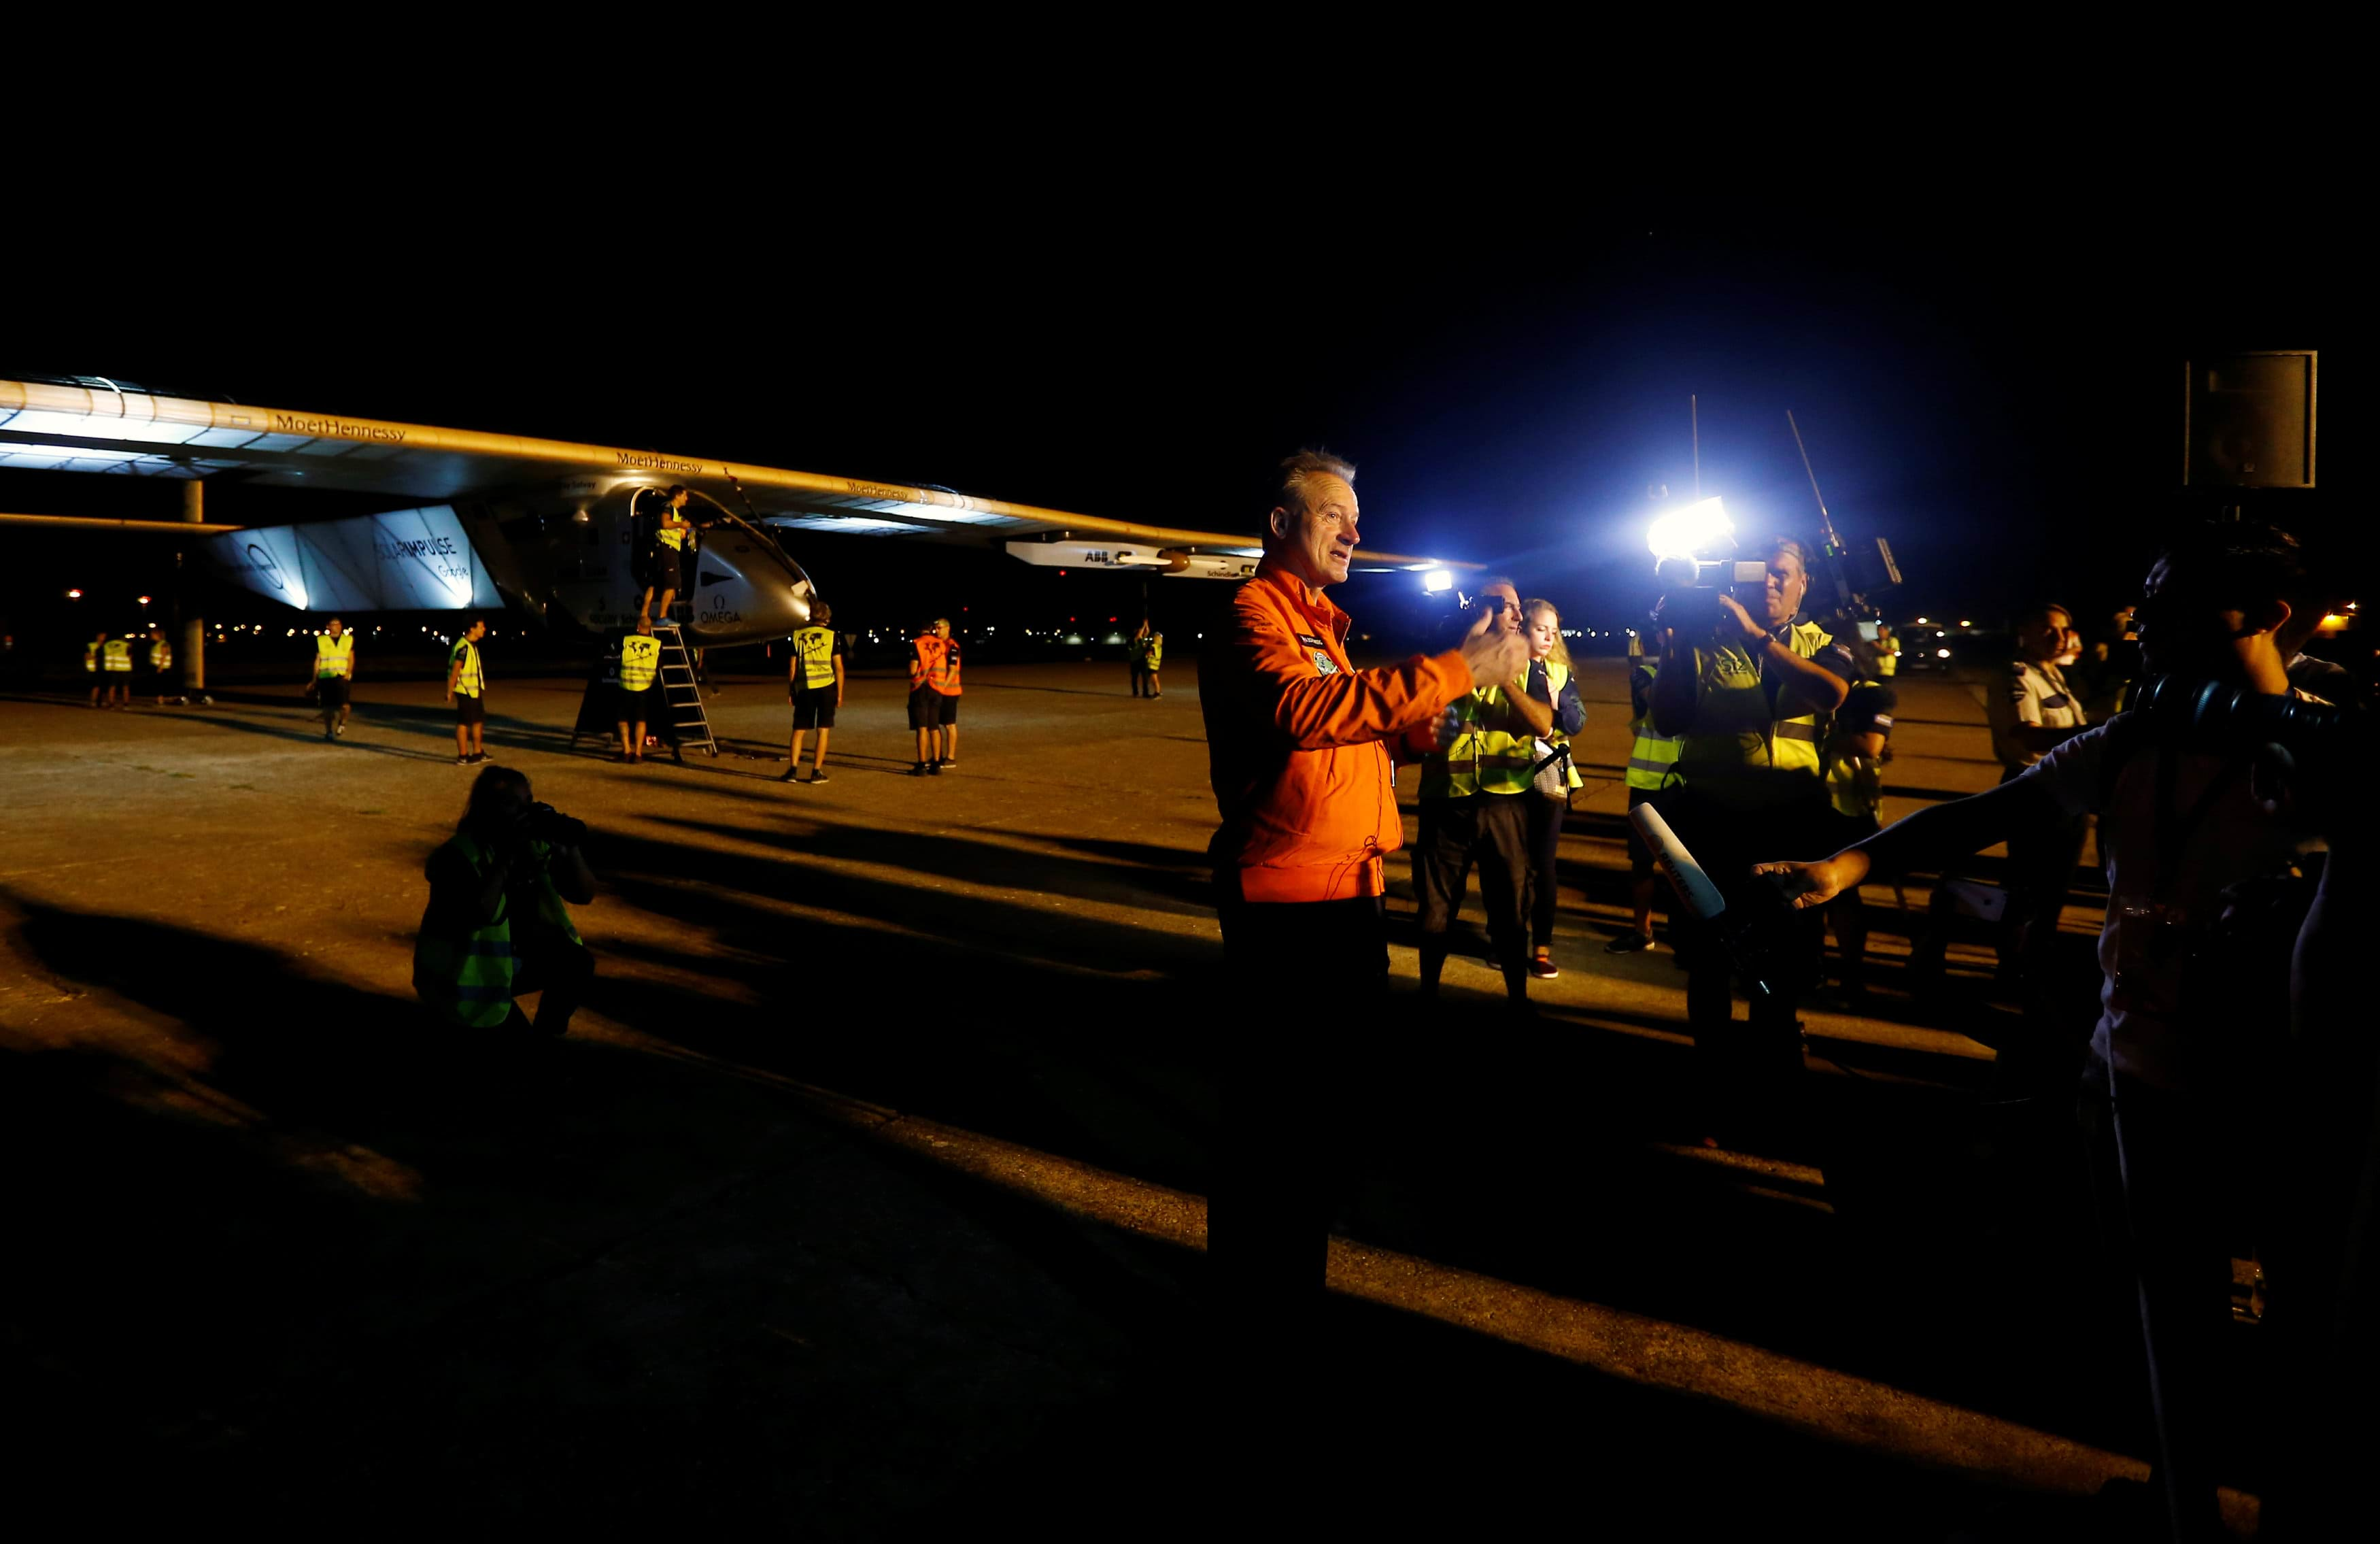 Swiss aviator of the solar-powered plane Solar Impulse 2 Borschberg speaks with journalists before taking off at San Pablo airport in Seville